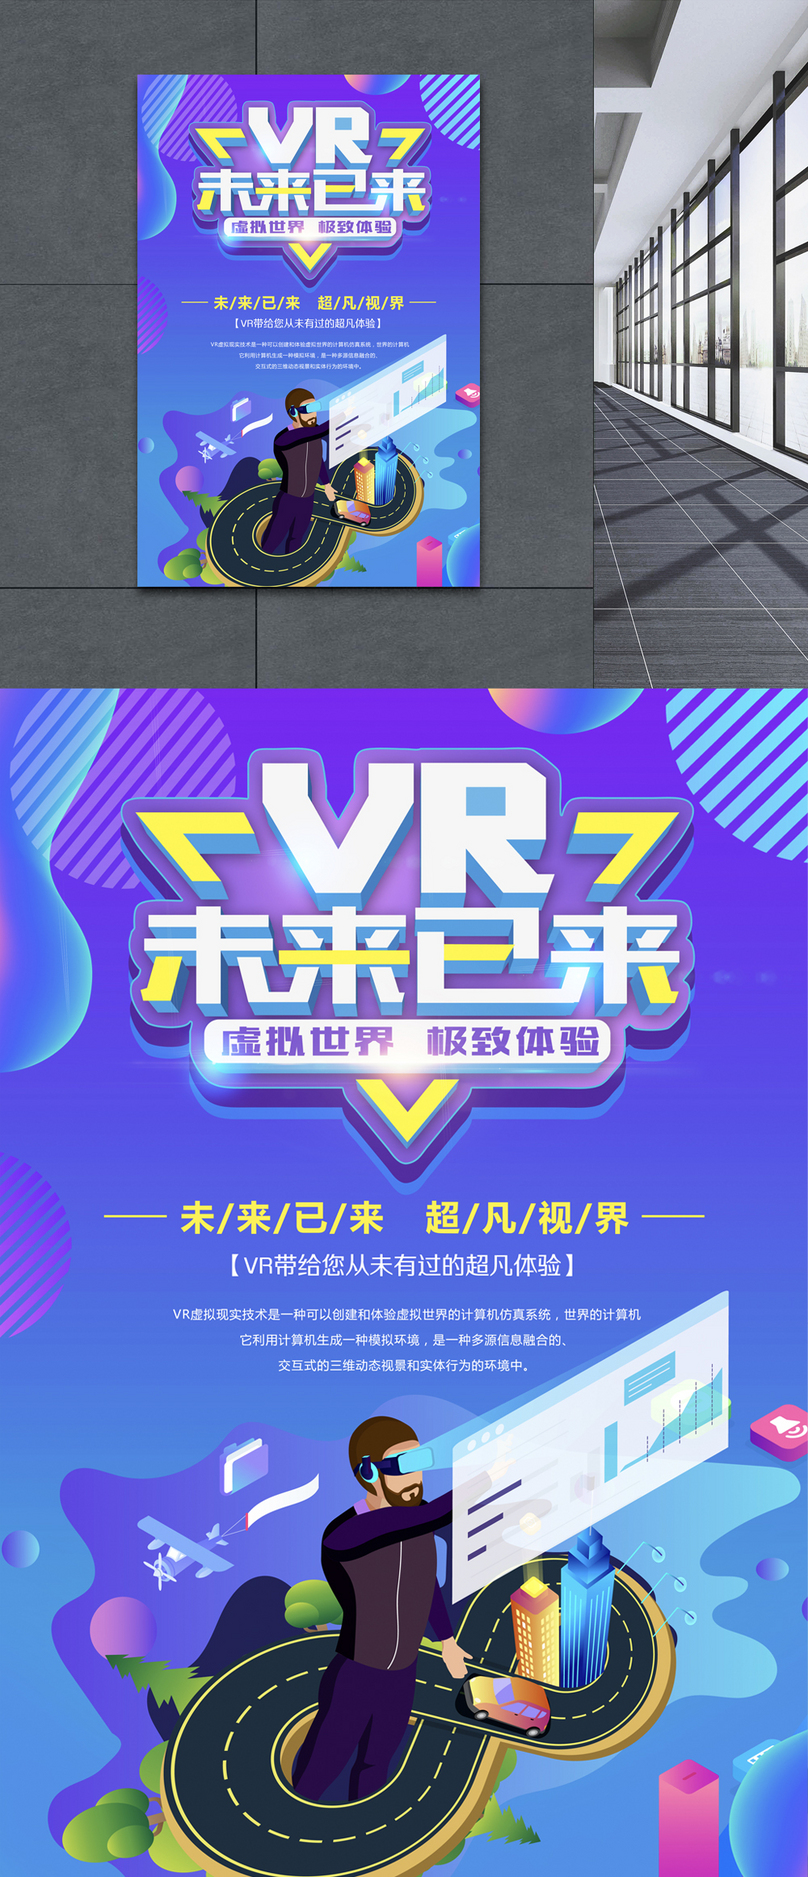 Vr the future has come to the poster template image_picture